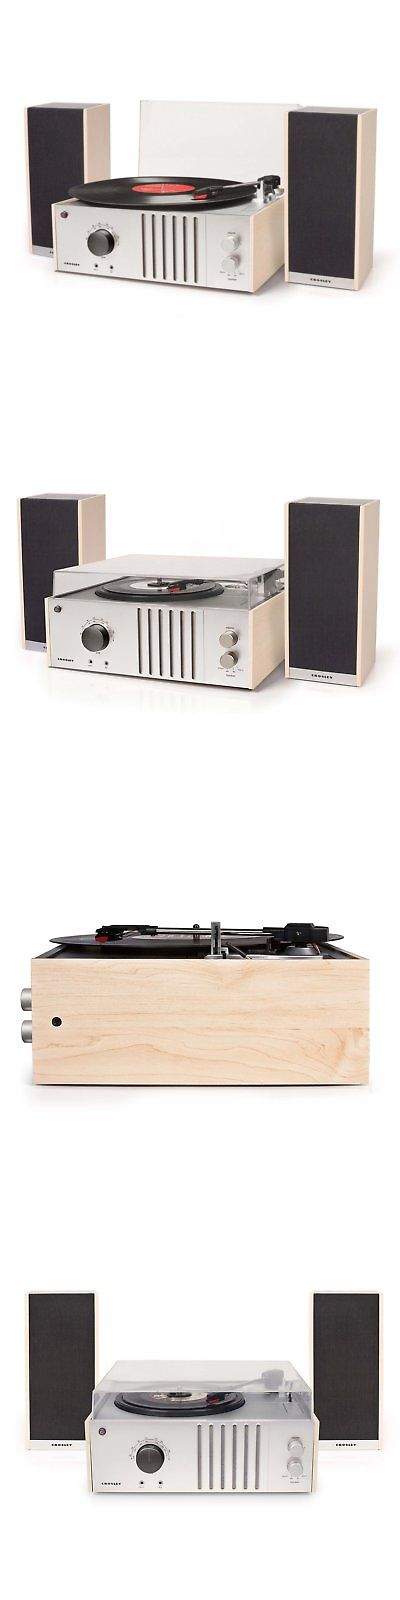 Record Players Home Turntables Crosley Player With Detachable Speakers It Now